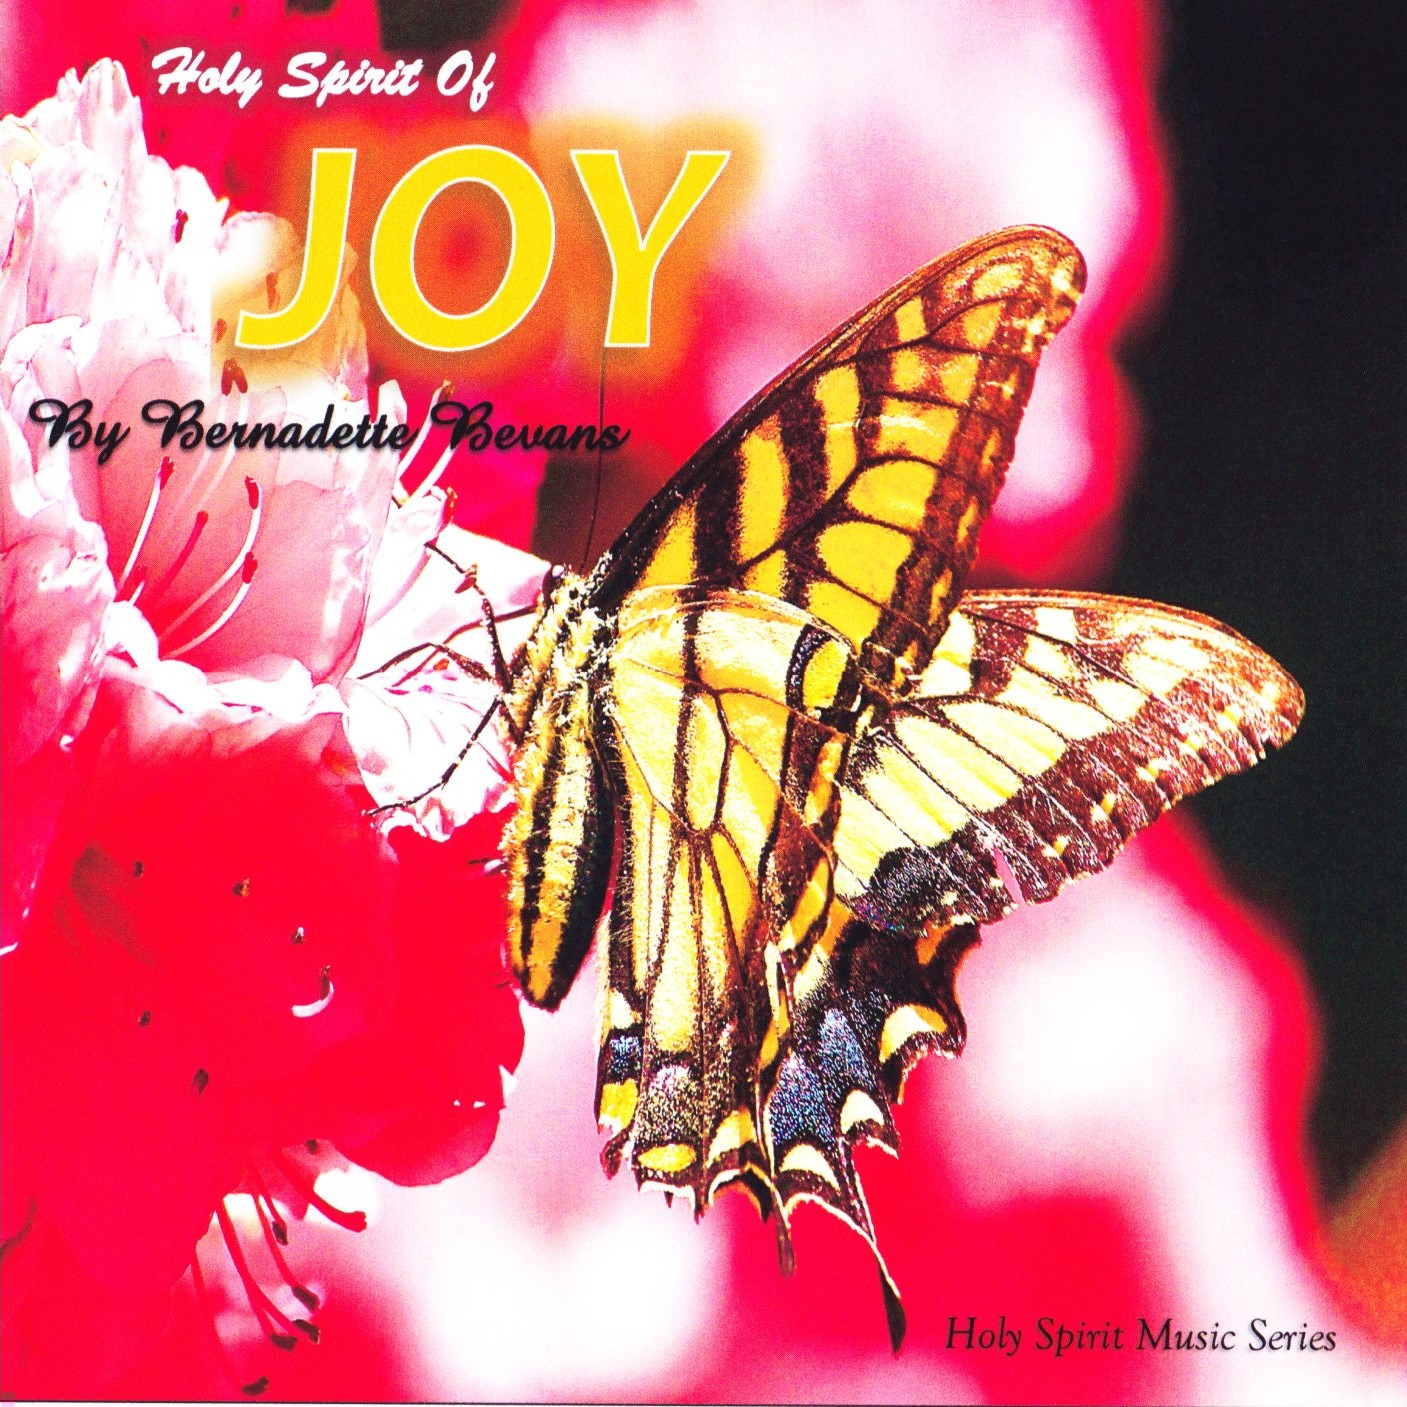 Holy Spirit of Joy